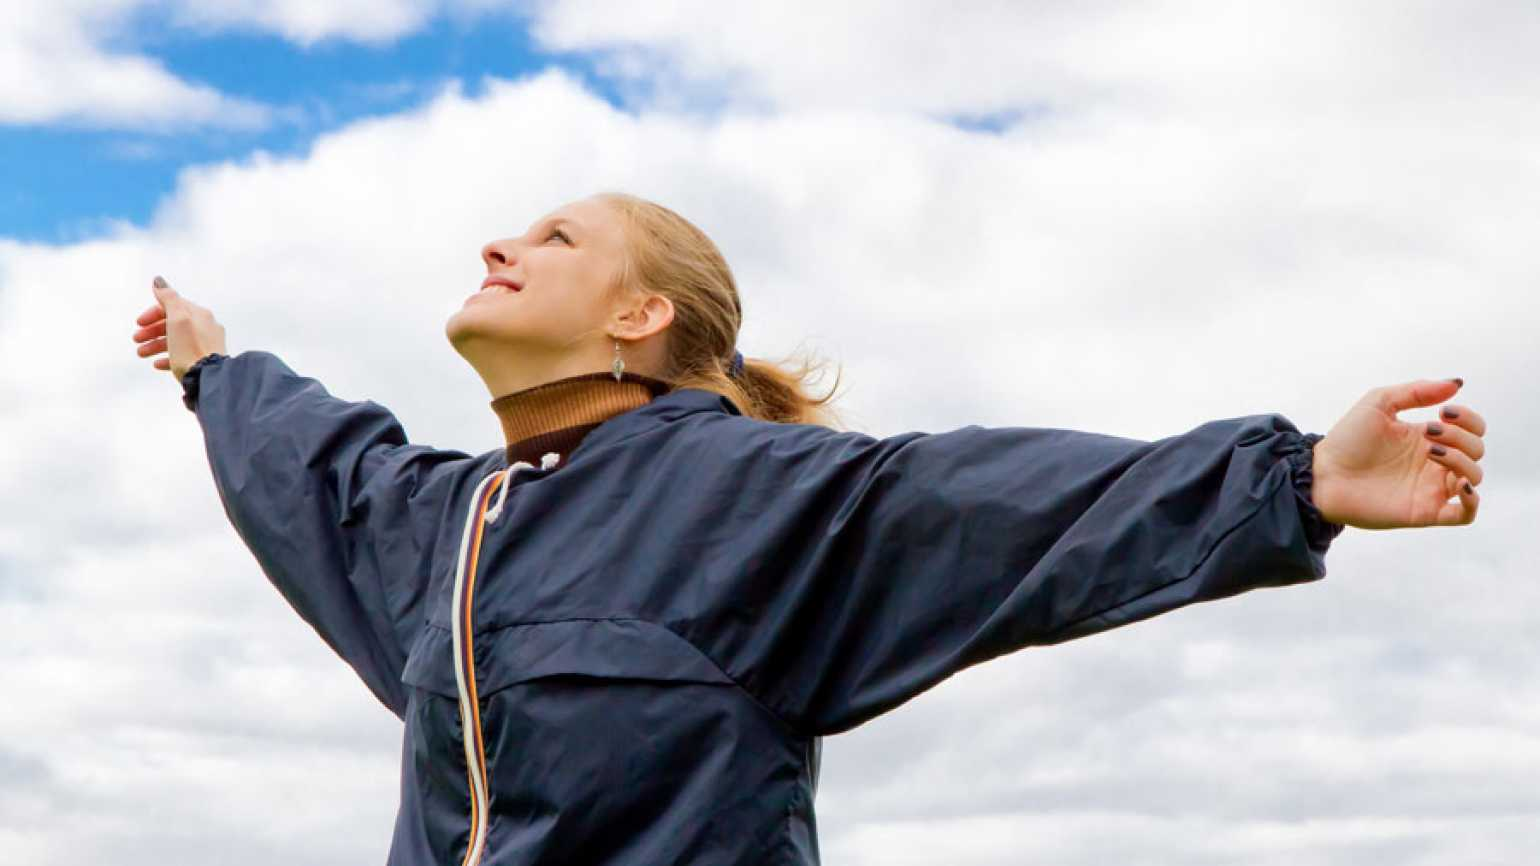 A smiling woman stands, arms spread, gazing up at the sky